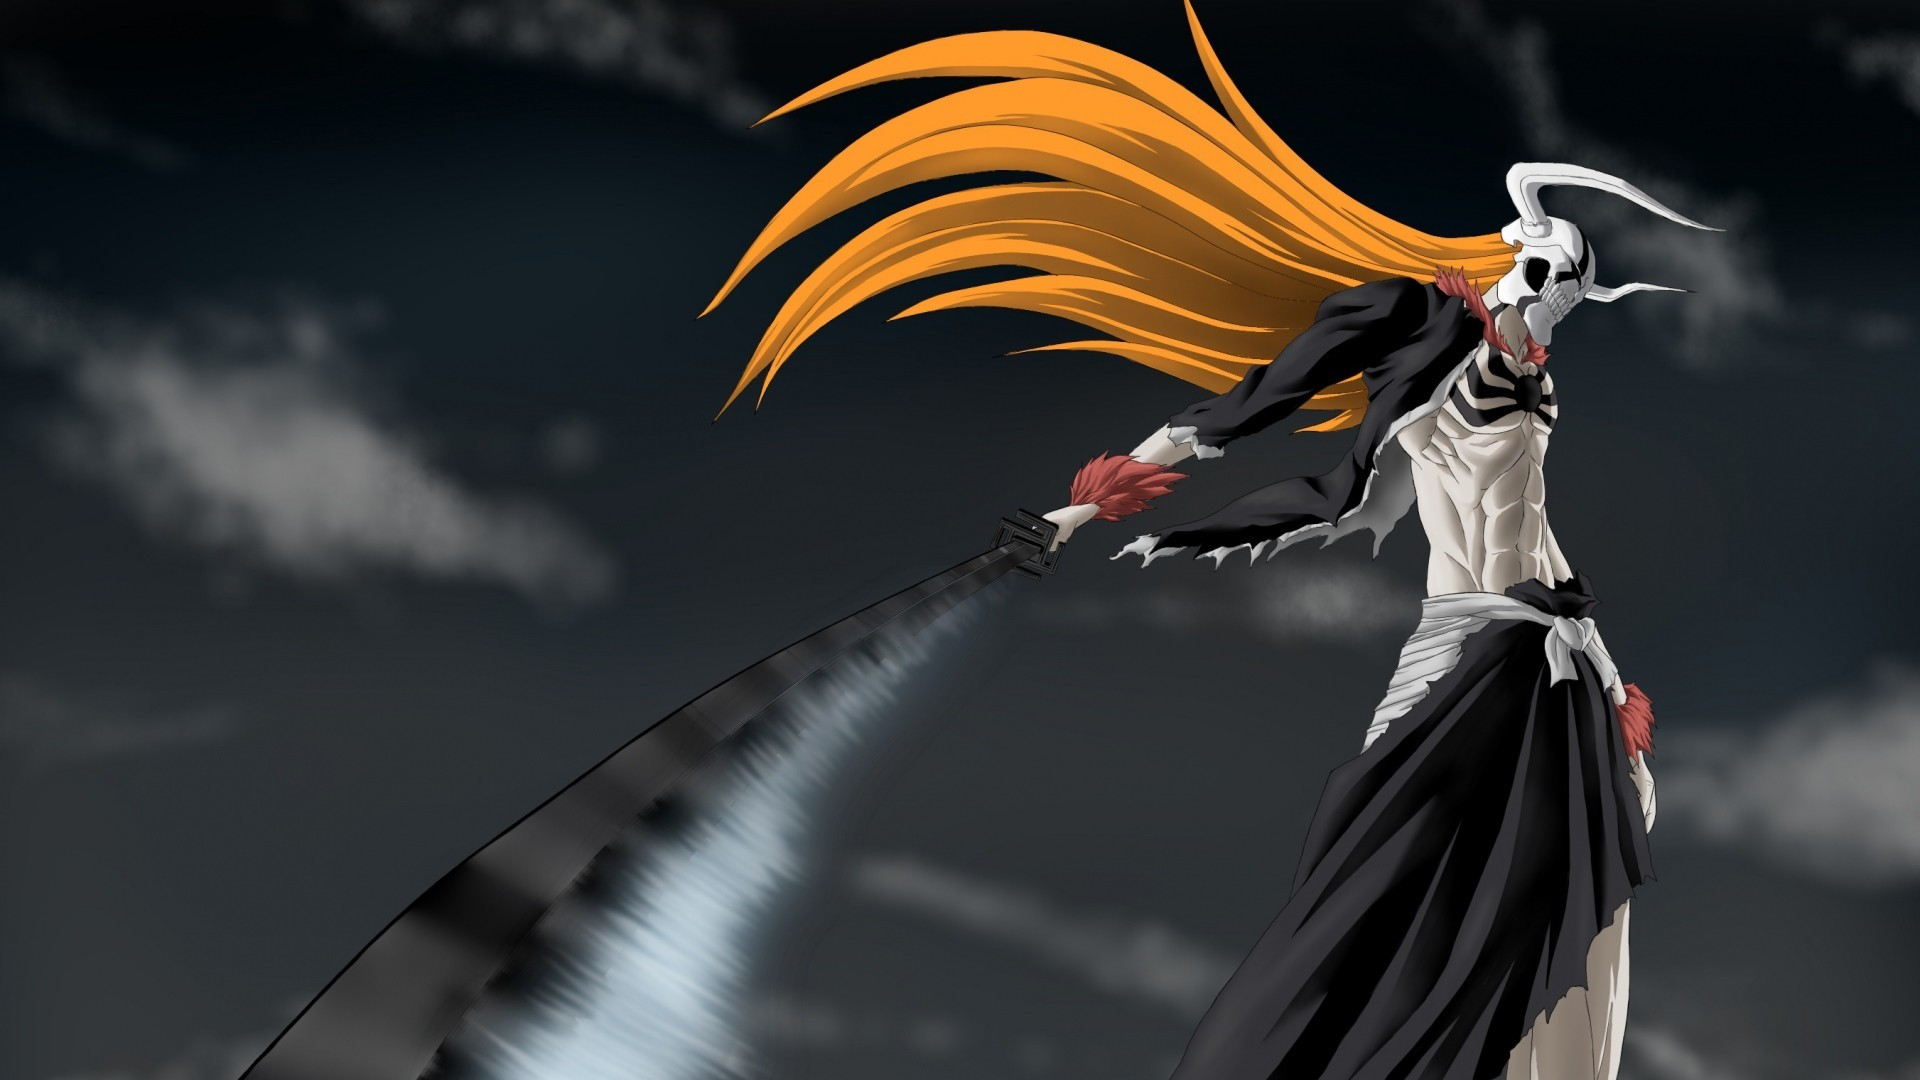 1920x1080  Preview wallpaper bleach, ichigo, sword, hollow, wave, weapons  . Download. Anime 1366X768 694685